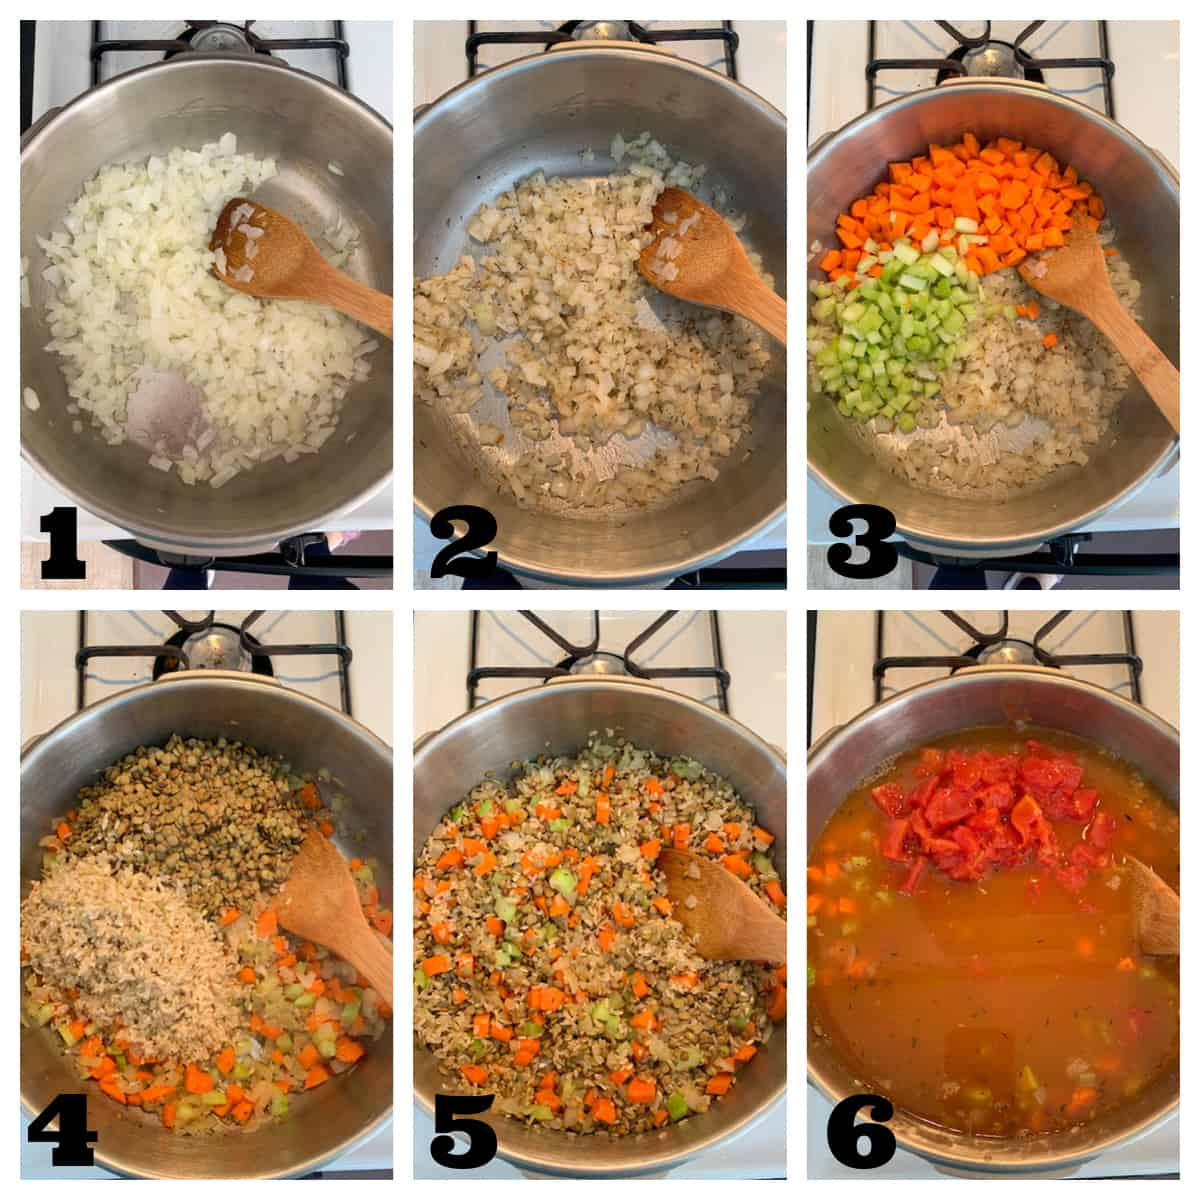 6 photo collage showing steps to make lentil rice soup.